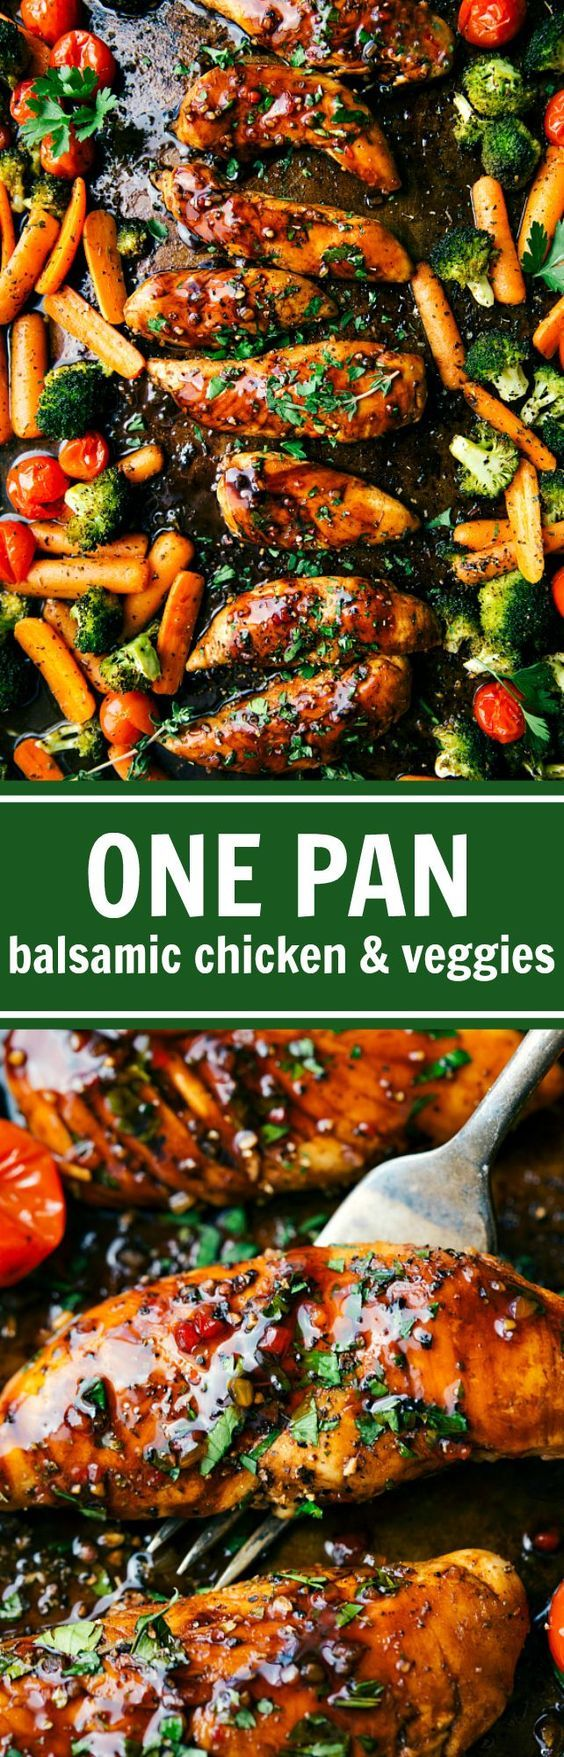 Sweet Balsamic chicken and veggies made in one pan. Ten minute prep and twenty minute cooking time -- this meal is efficient healthy and simple to make!